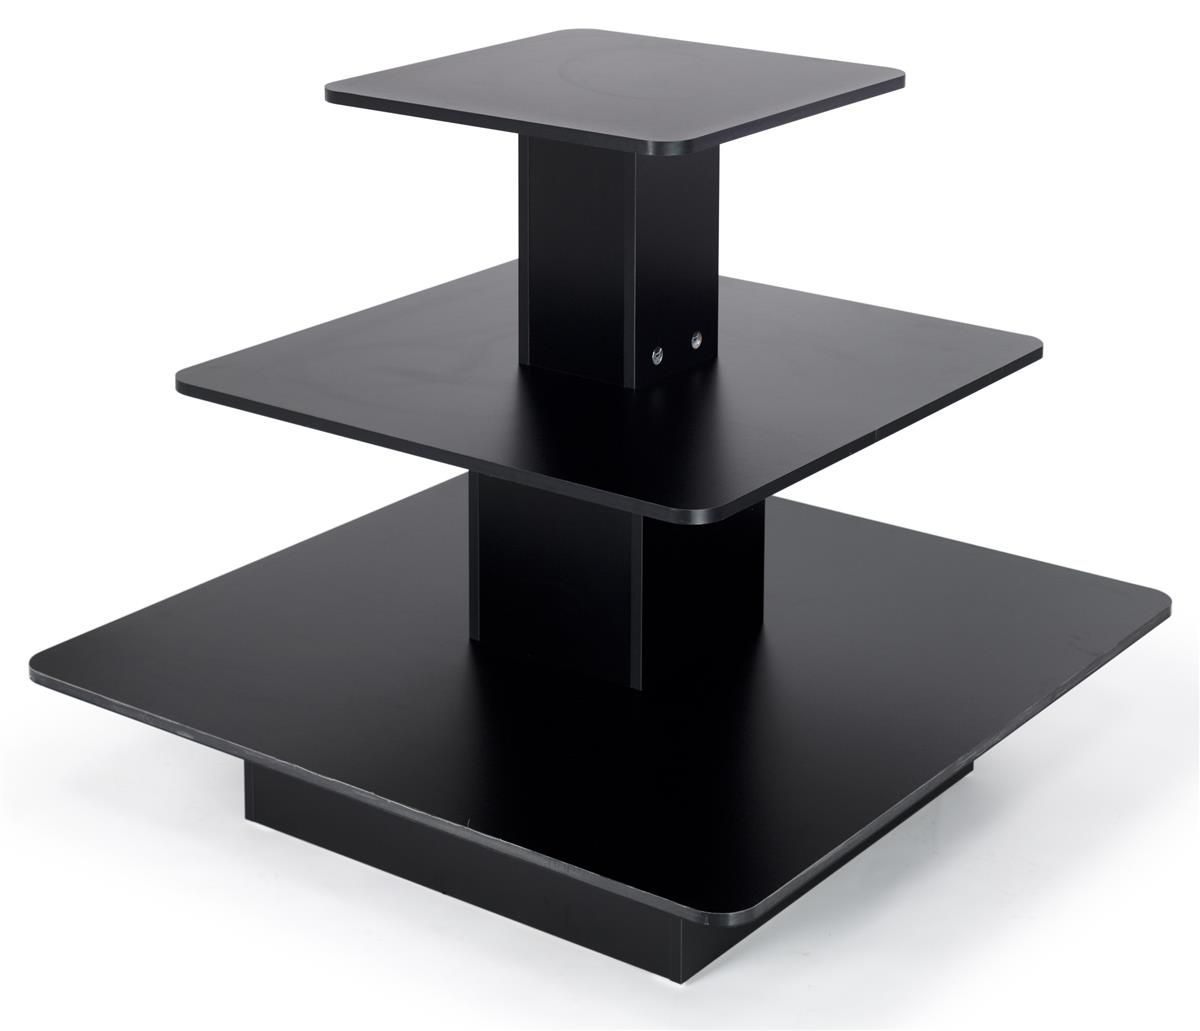 3-Tier Melamine Square Table - Las Vegas Mannequins